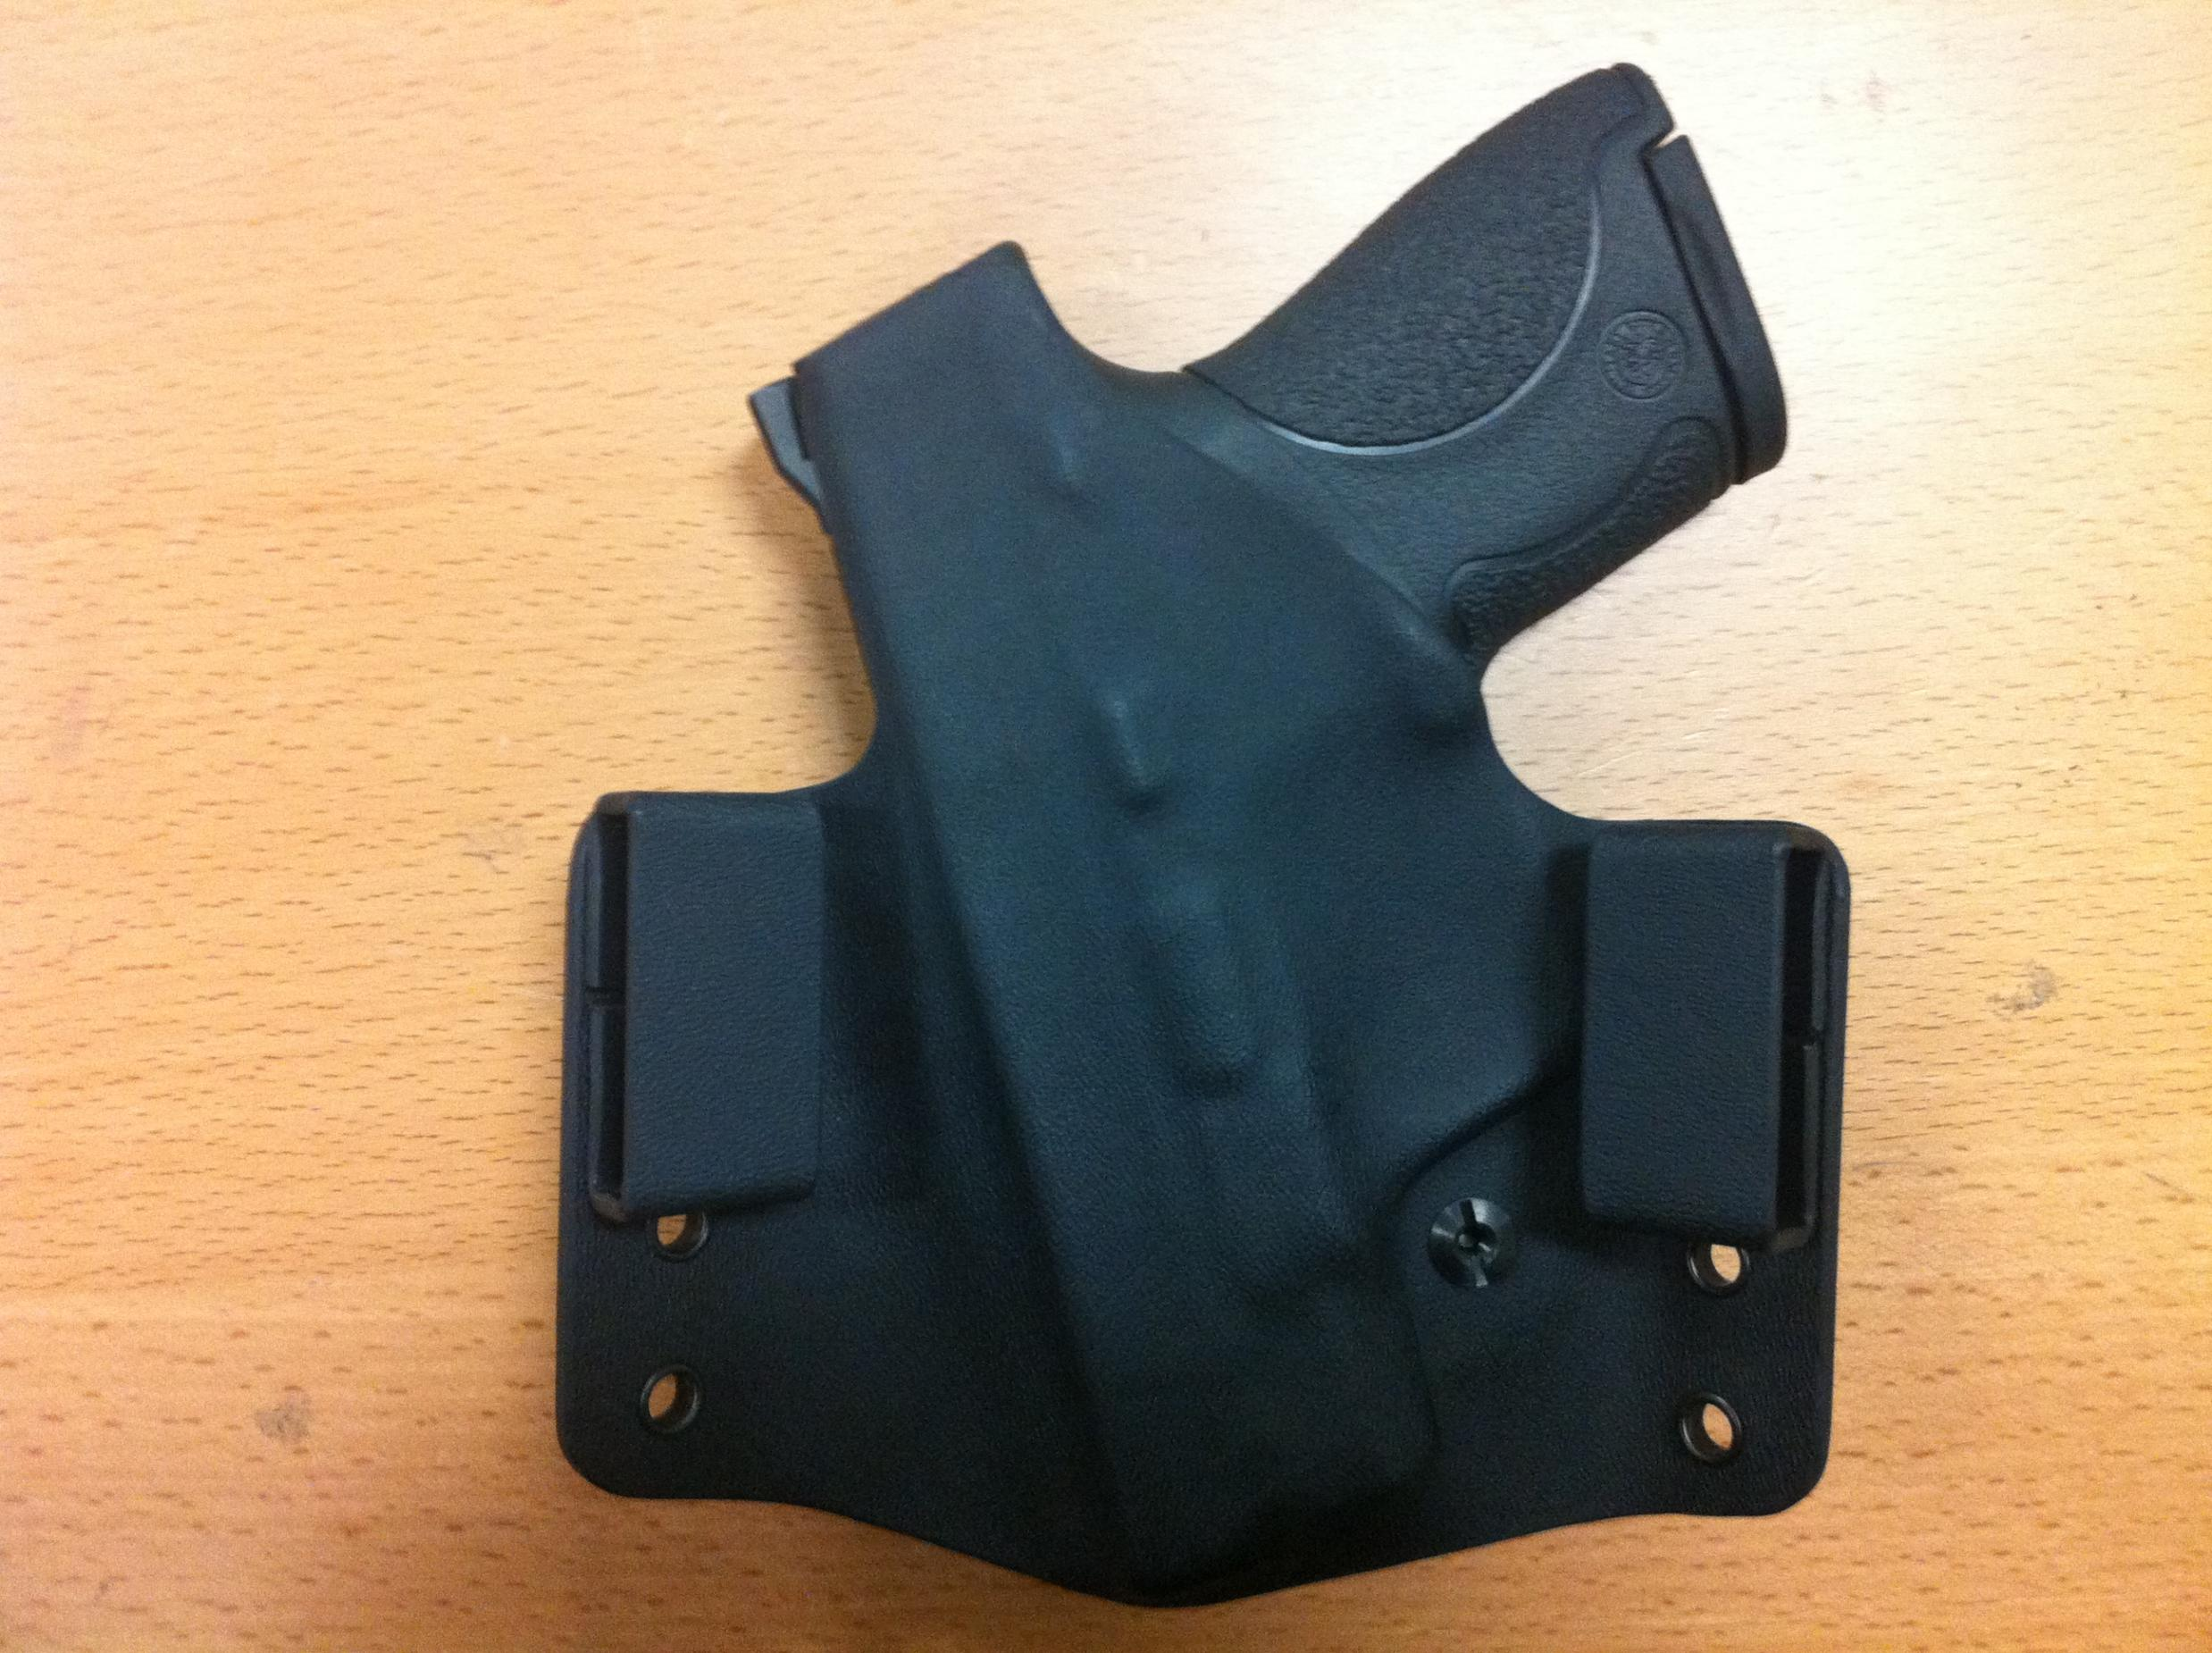 MP shield Holsters came in-photo-2-1-.jpg